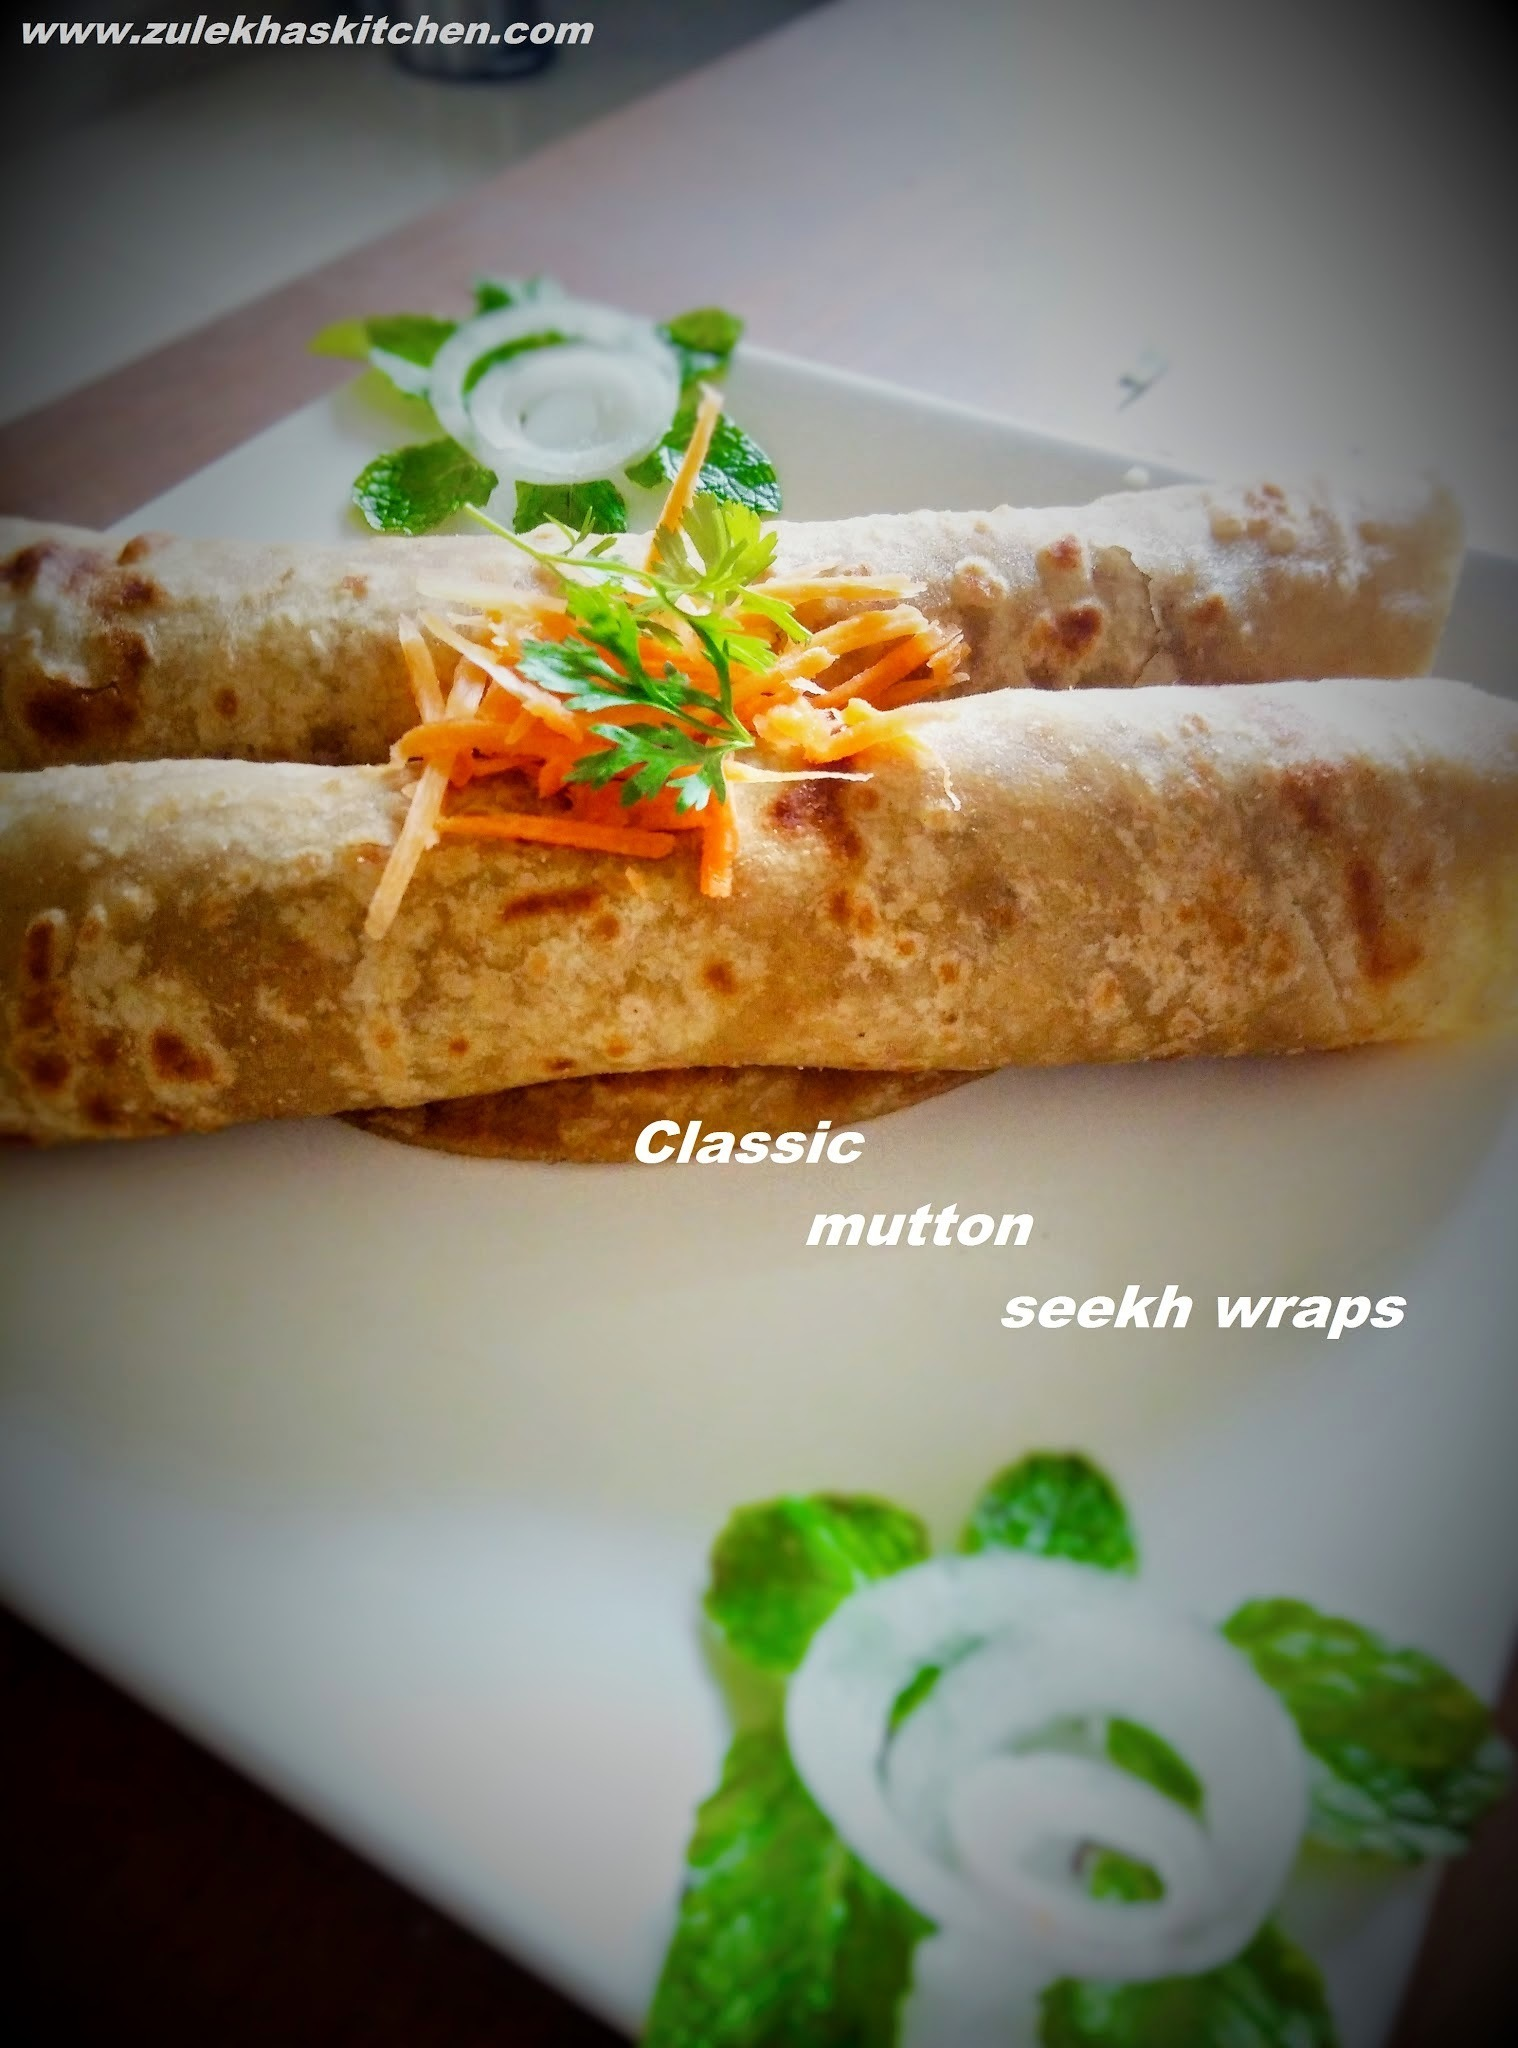 Recipe of Classic Mutton Seekh Kabab wraps